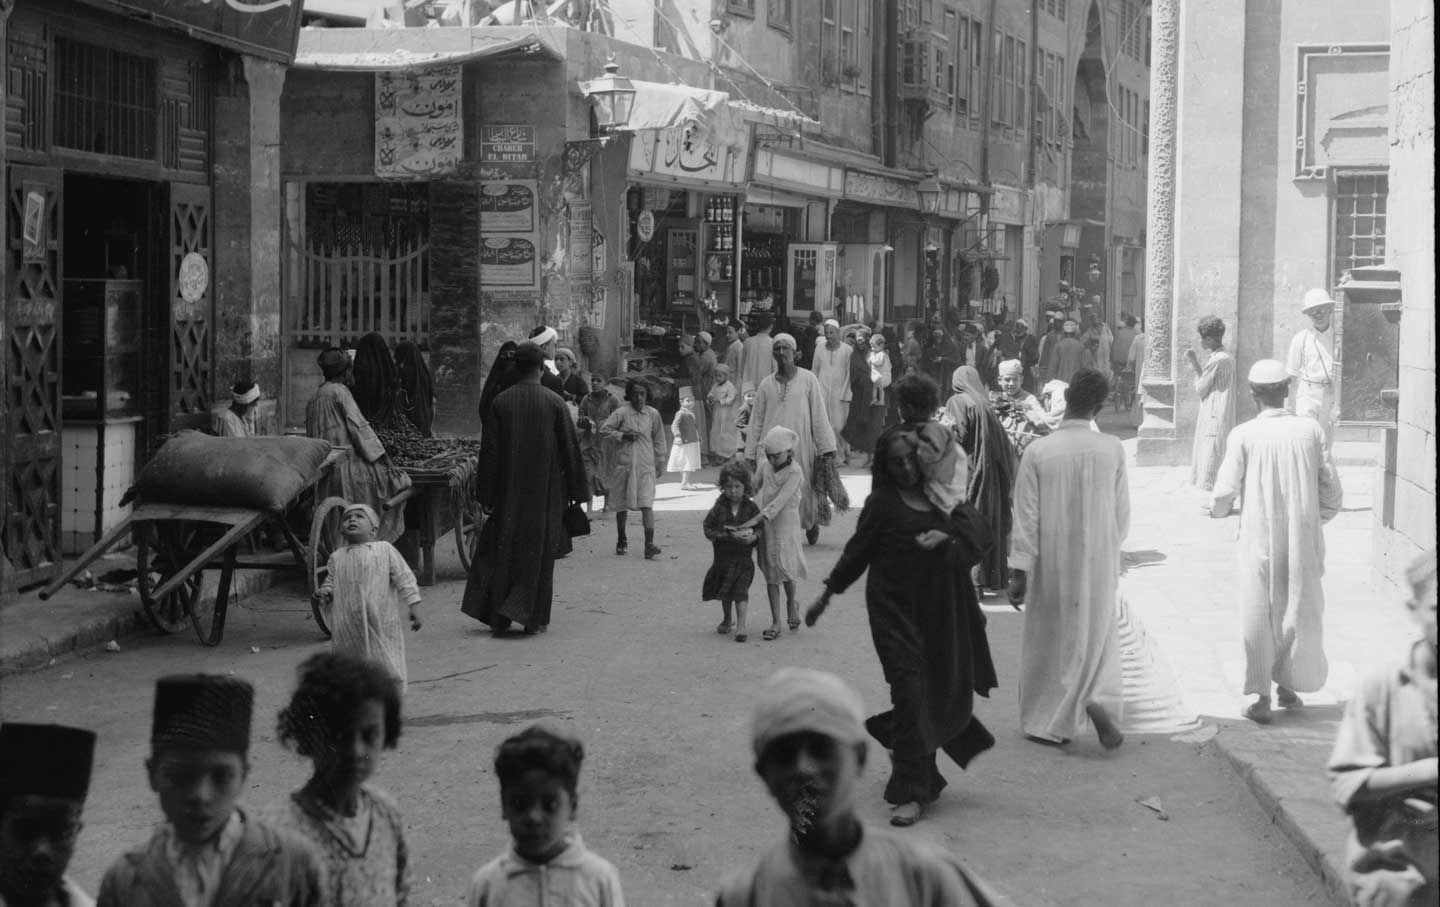 Cairo Street Scene, 1934. Credit: Library of Congress